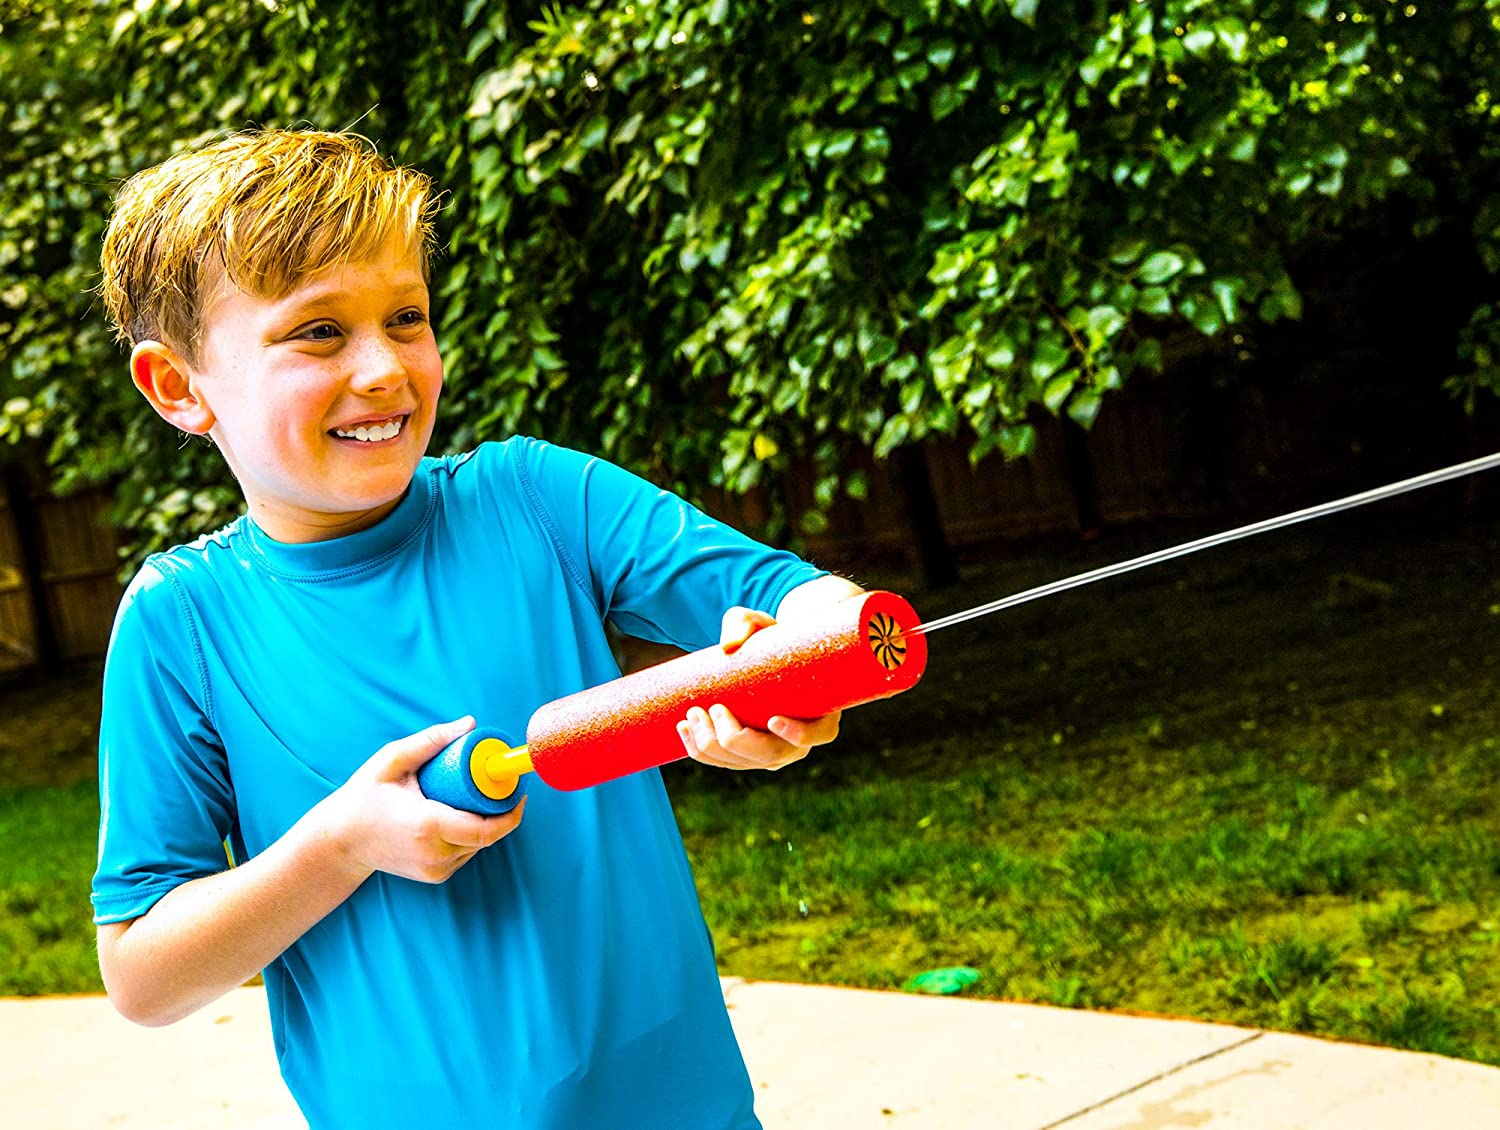 boy squirting water outside with a foam water gun